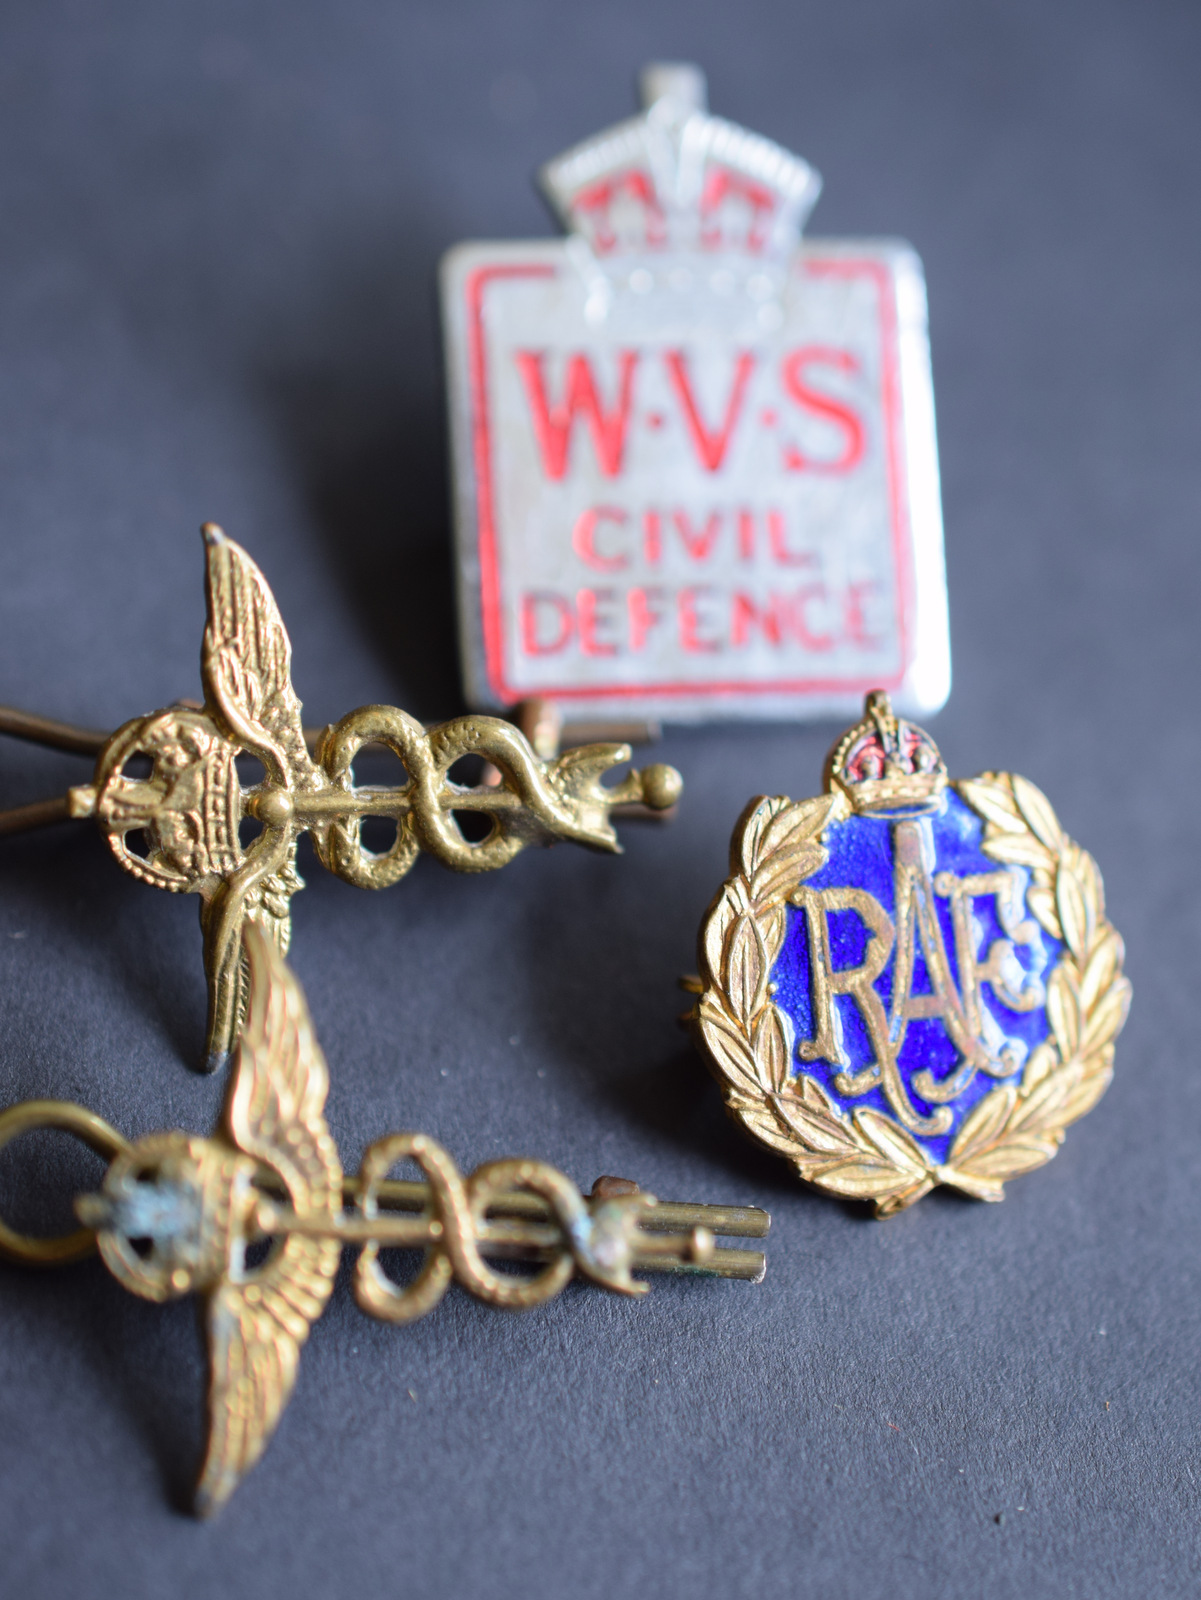 WW2 RAF Photo Album And Badges, Medals - Image 7 of 9